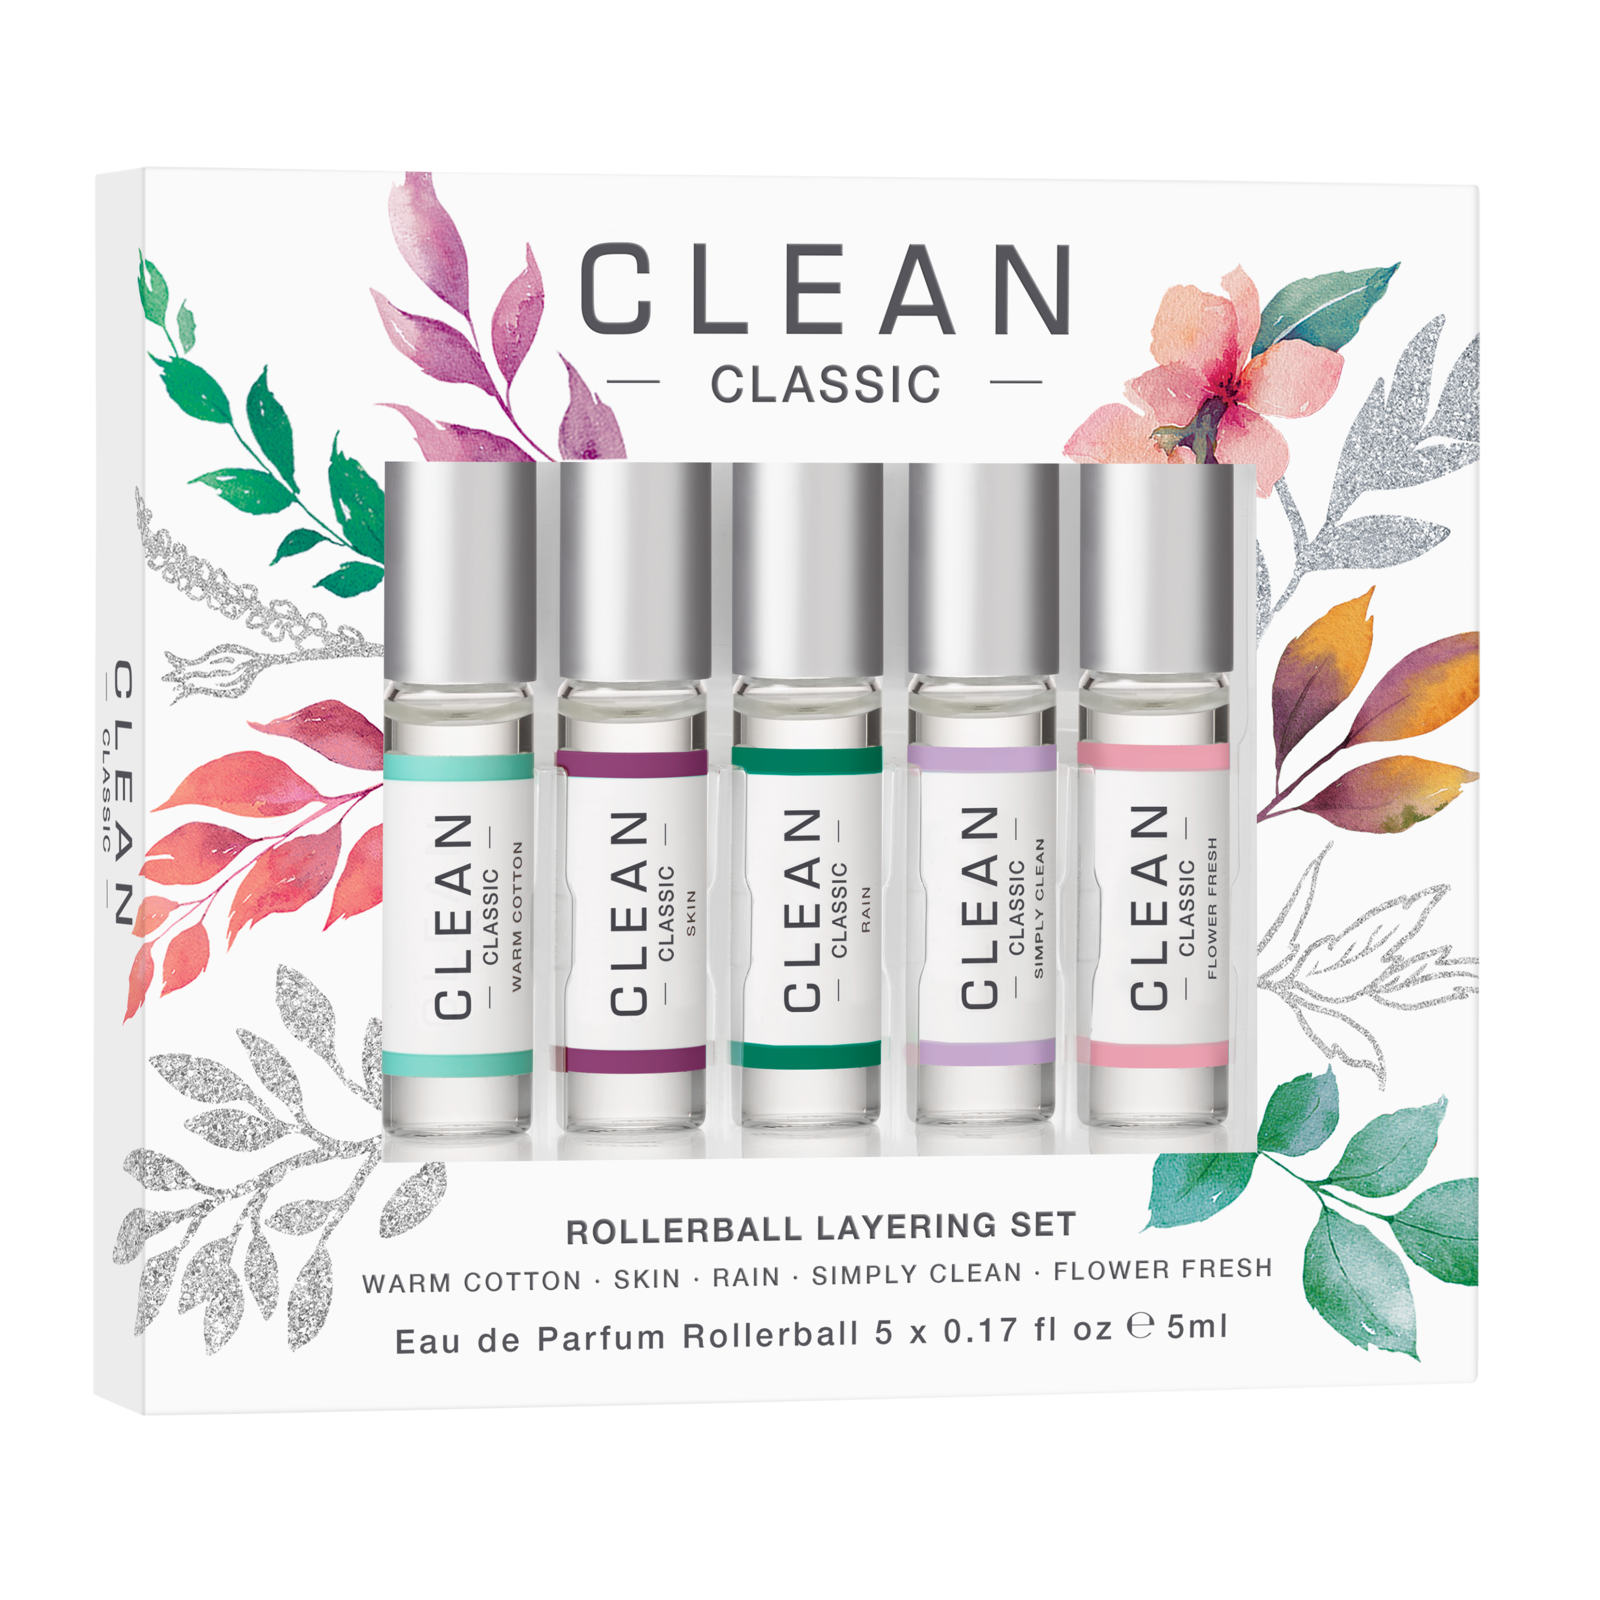 Clean - Rollerball Layering Set